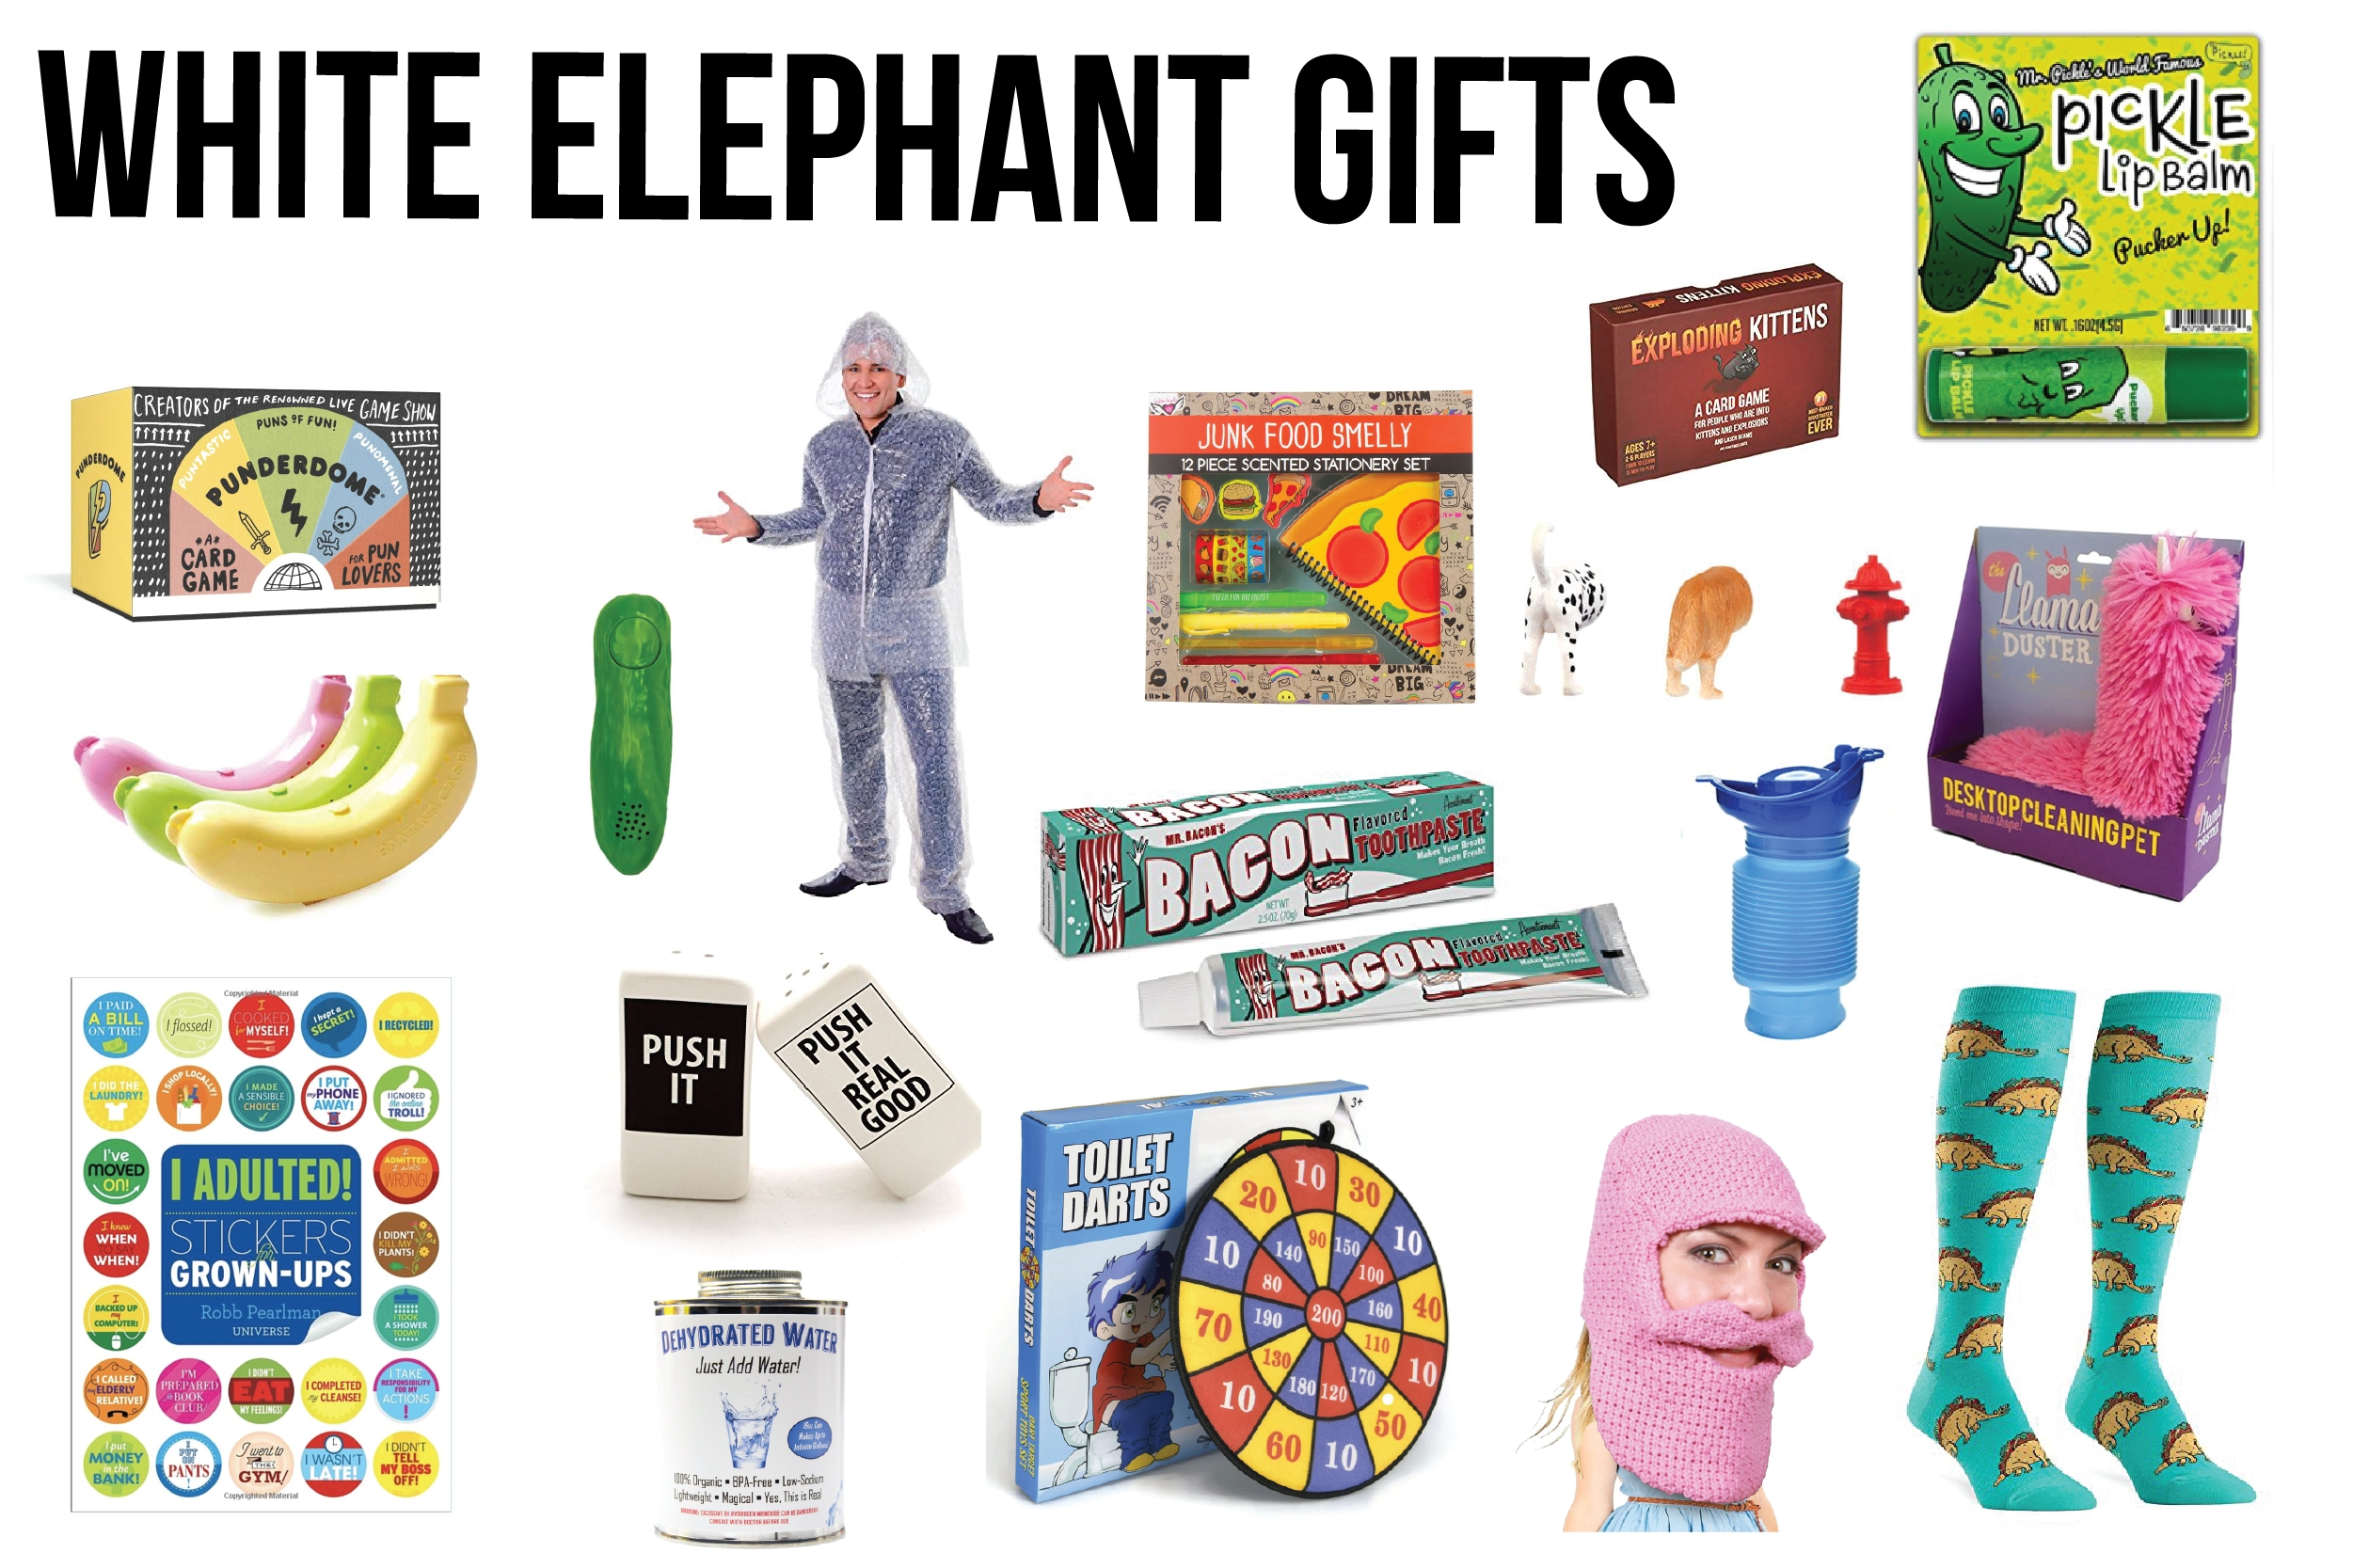 10 Attractive Top White Elephant Gift Ideas 100 of the best white elephant gifts other gift ideas play 1 2020